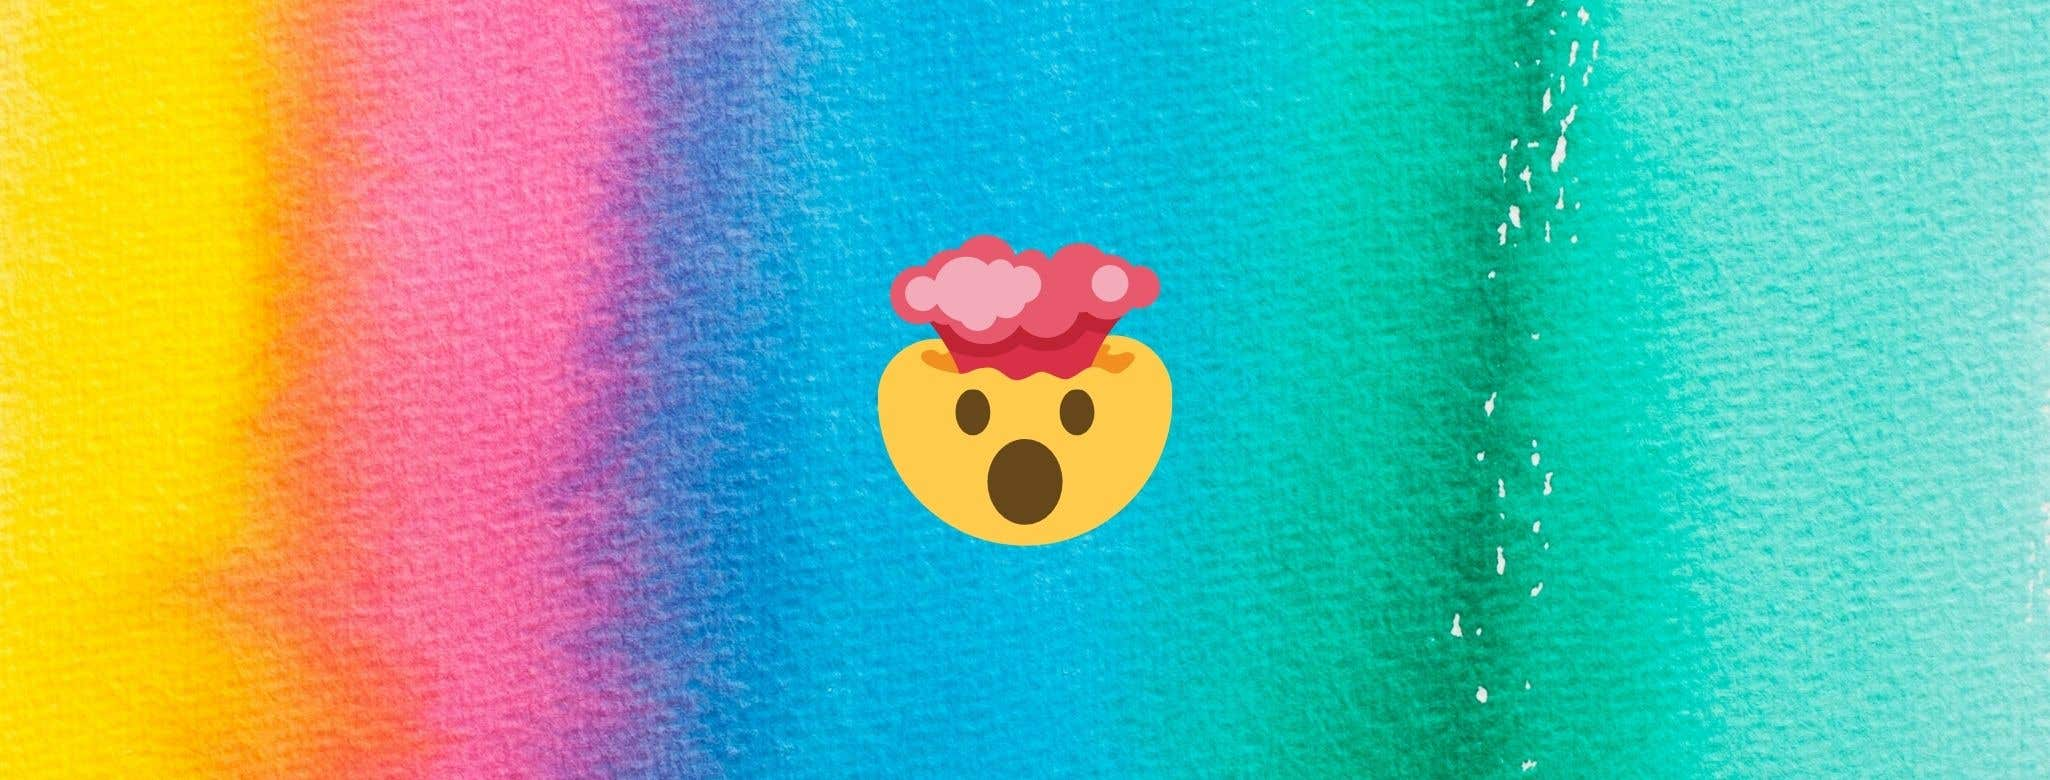 emoji of head exploding against rainbow colored backdrop